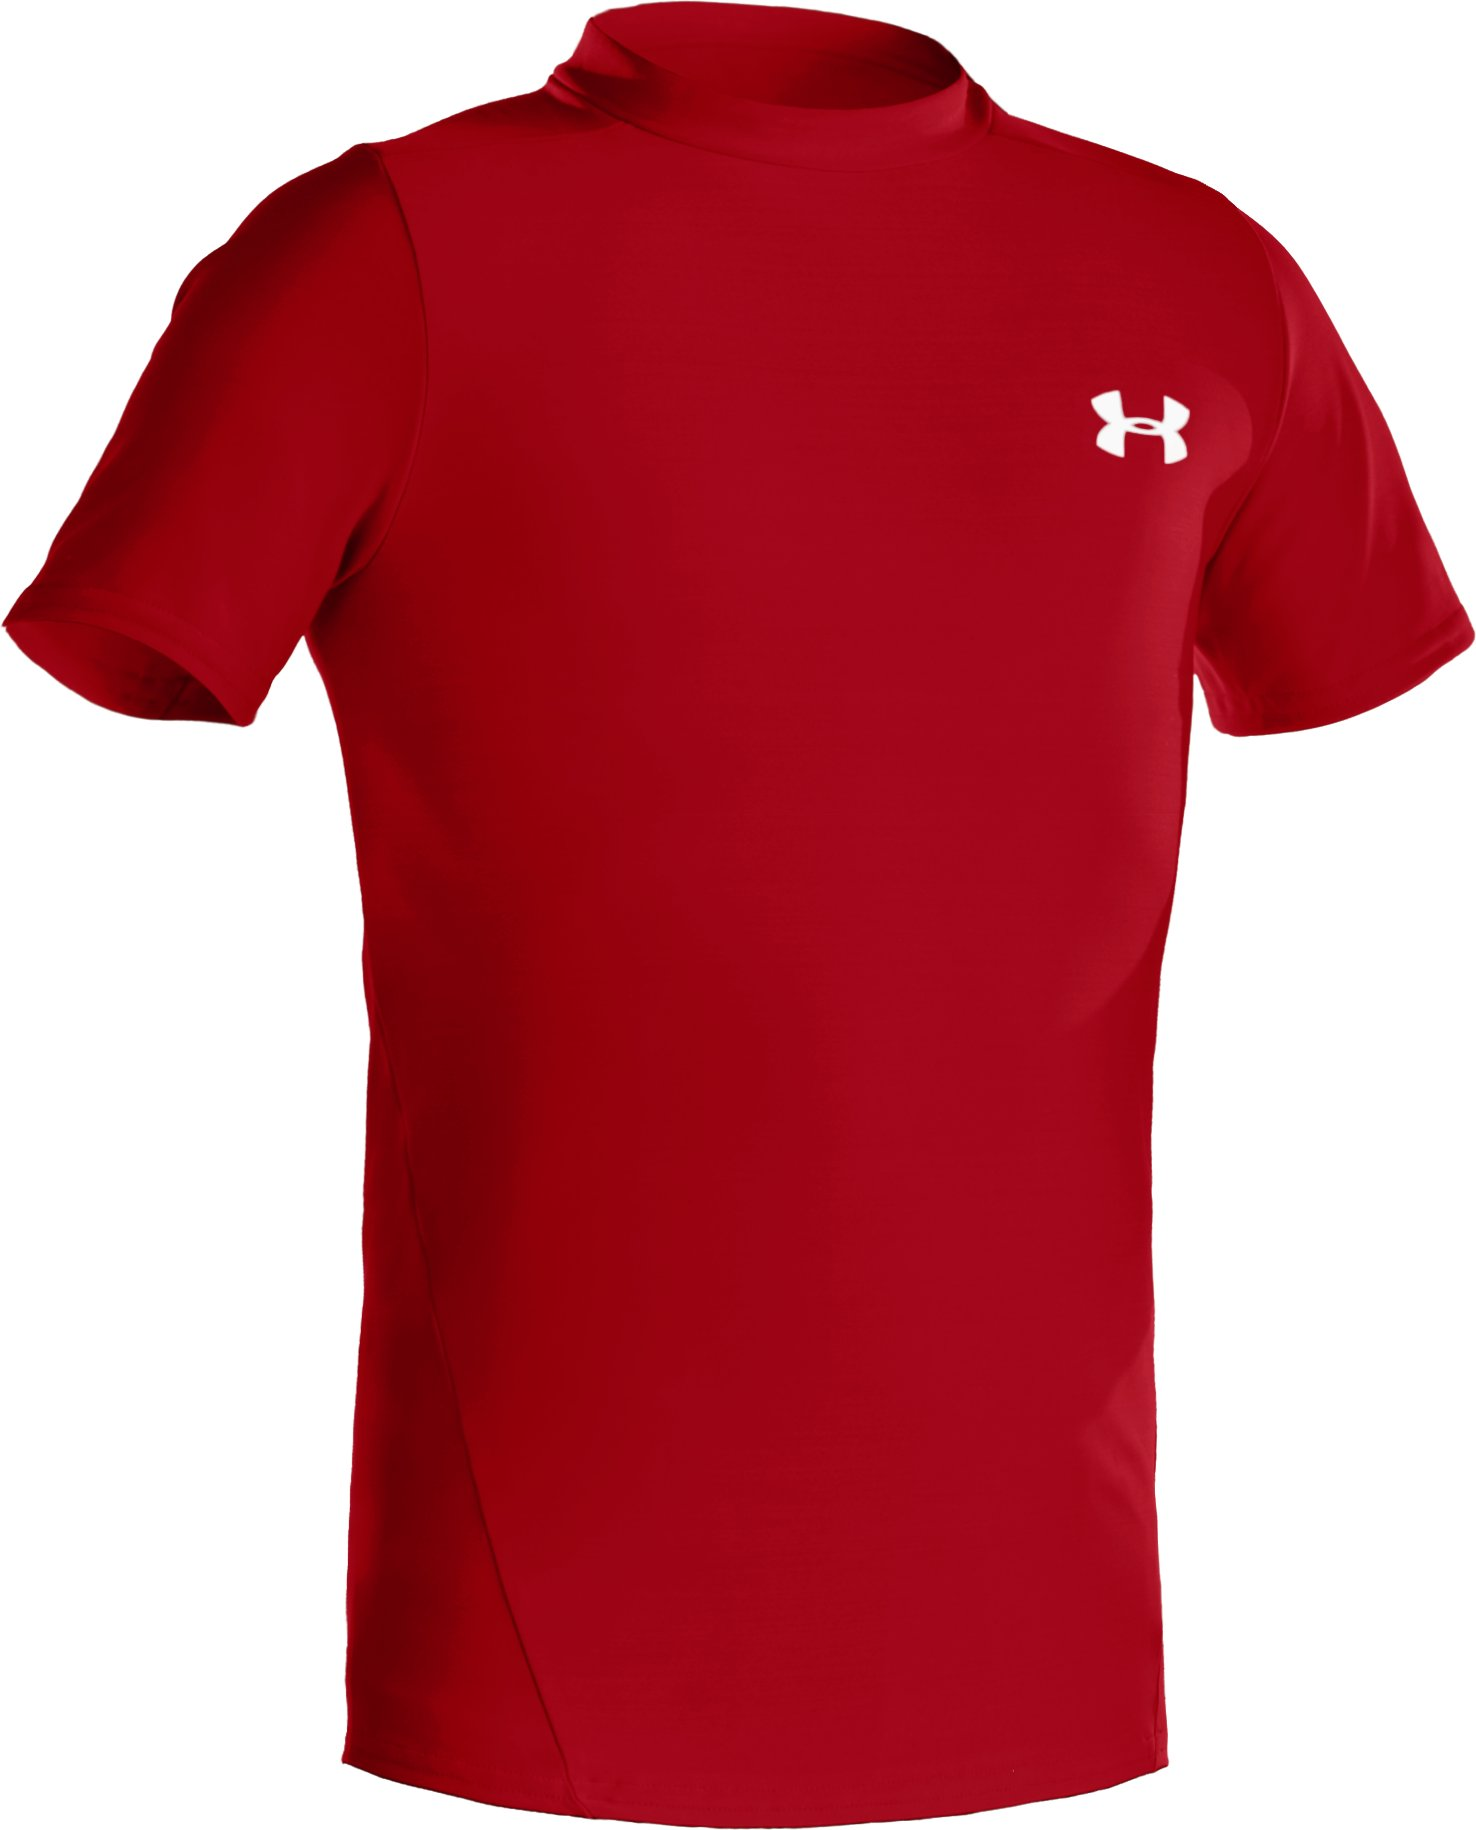 Boys' Short Sleeve HeatGear® T-Shirt II, Red, zoomed image